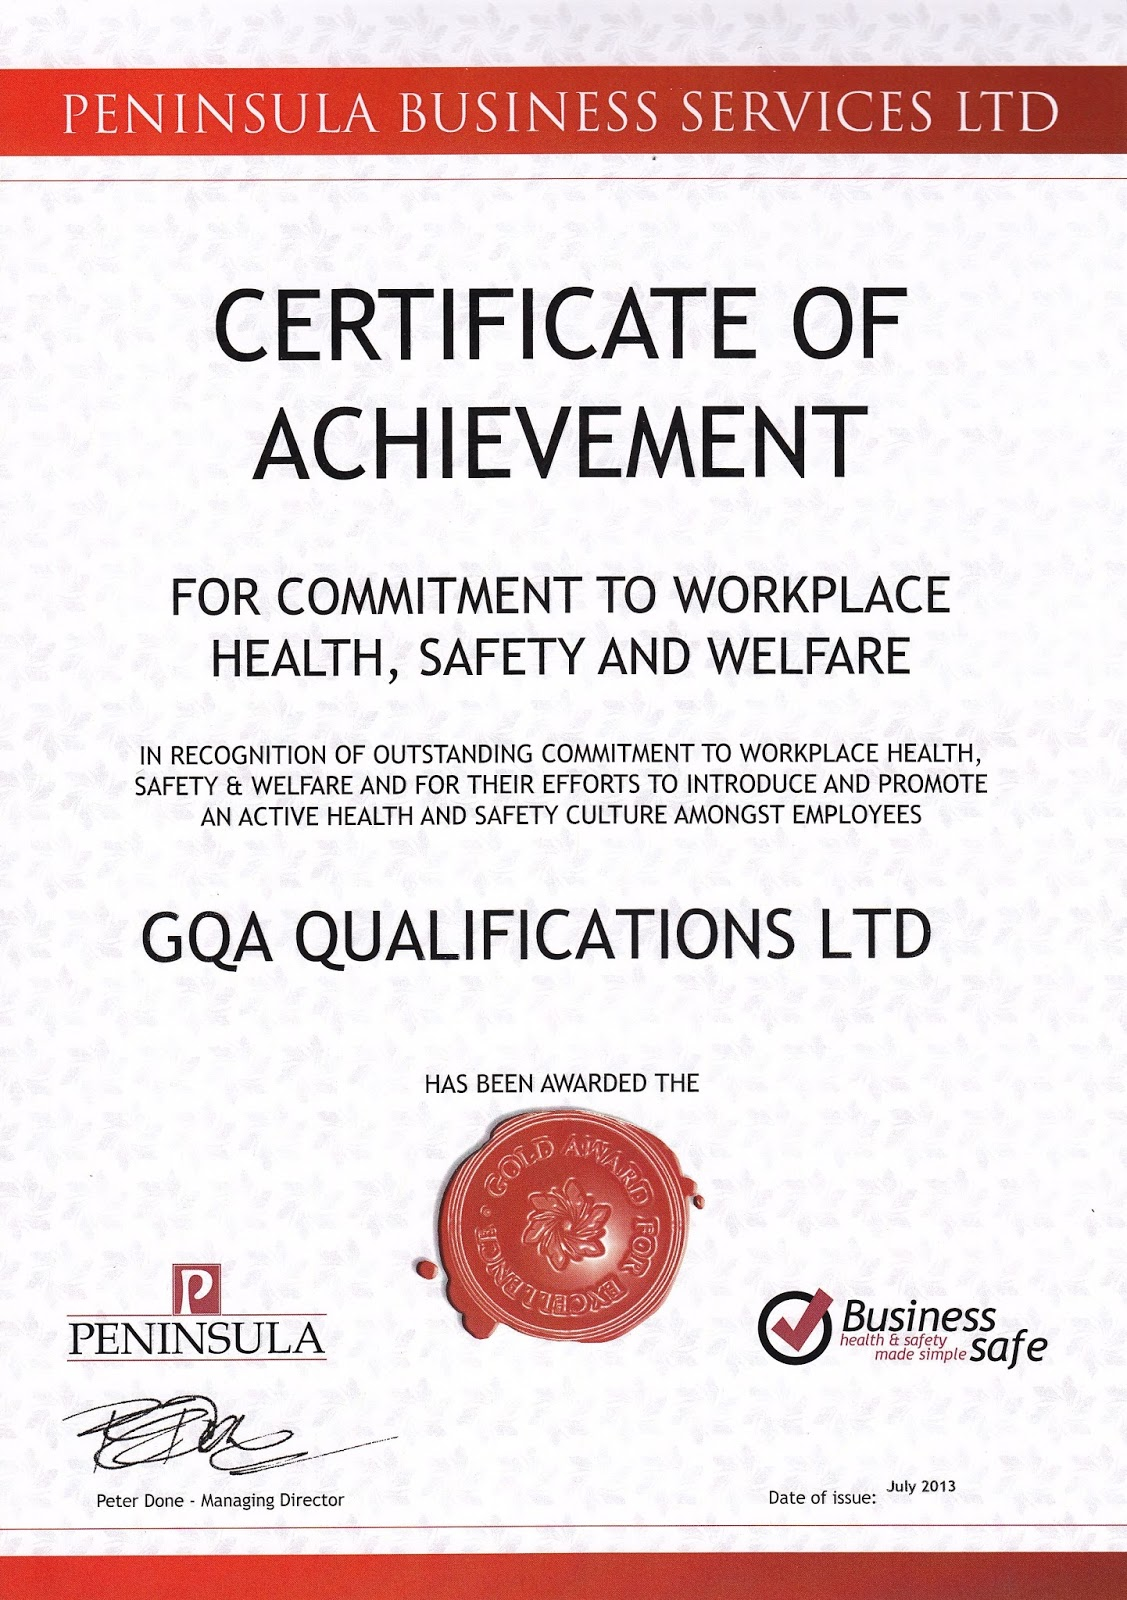 Gqa qualifications gqa receives certificate of achievement for working with peninsula business services we carried out a full review of all aspects of health and safety writing new risk assessments and updating 1betcityfo Gallery